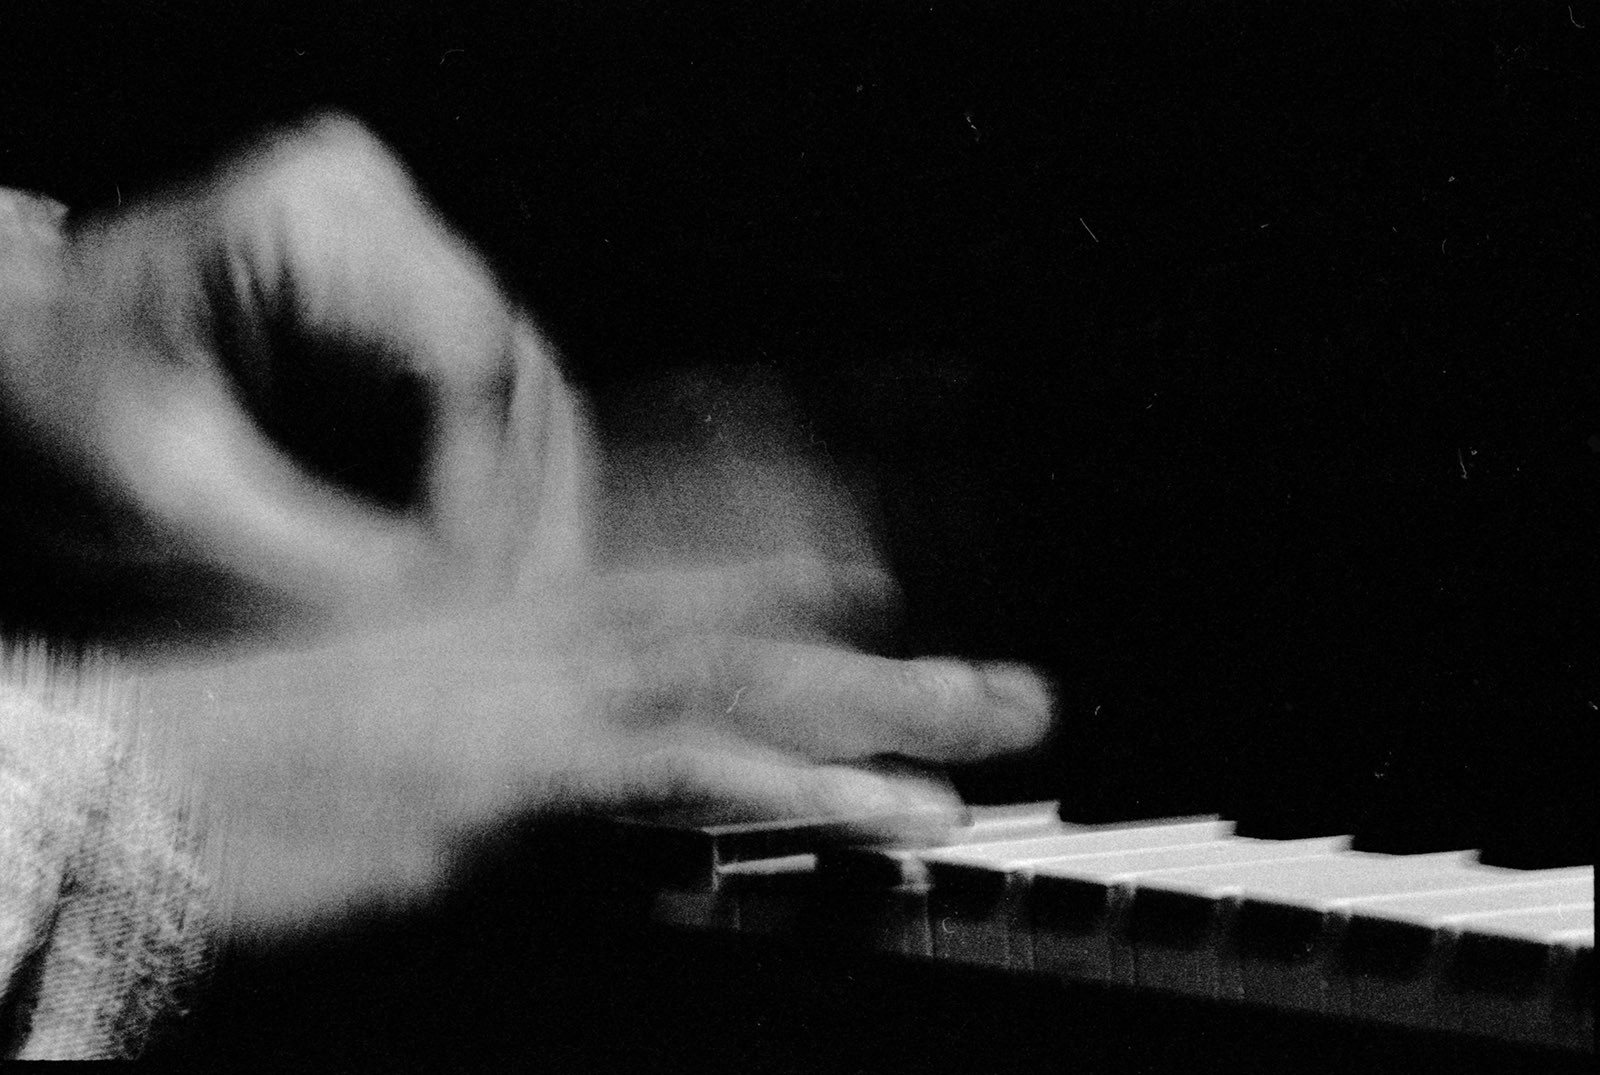 Cecil Taylor playing at the Sweet Basil nightclub, New York, 1989